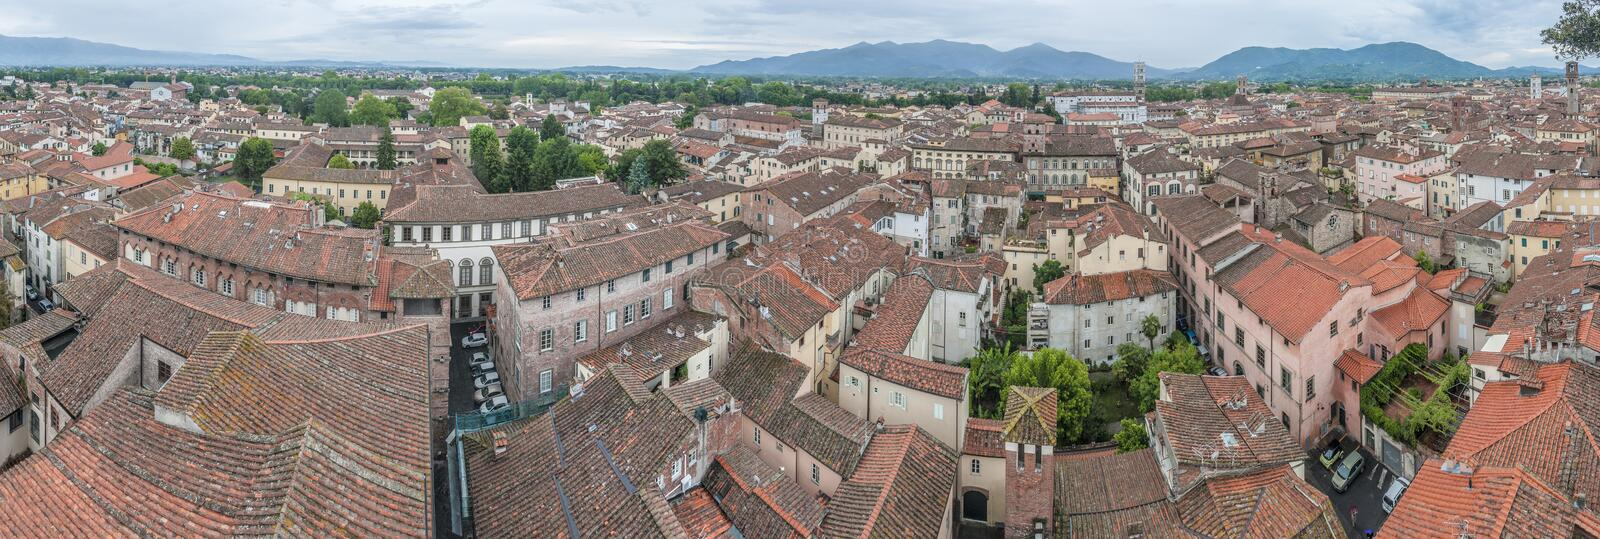 Download General View Of Lucca In Tuscany, Italy Stock Image - Image of italian, european: 39509653